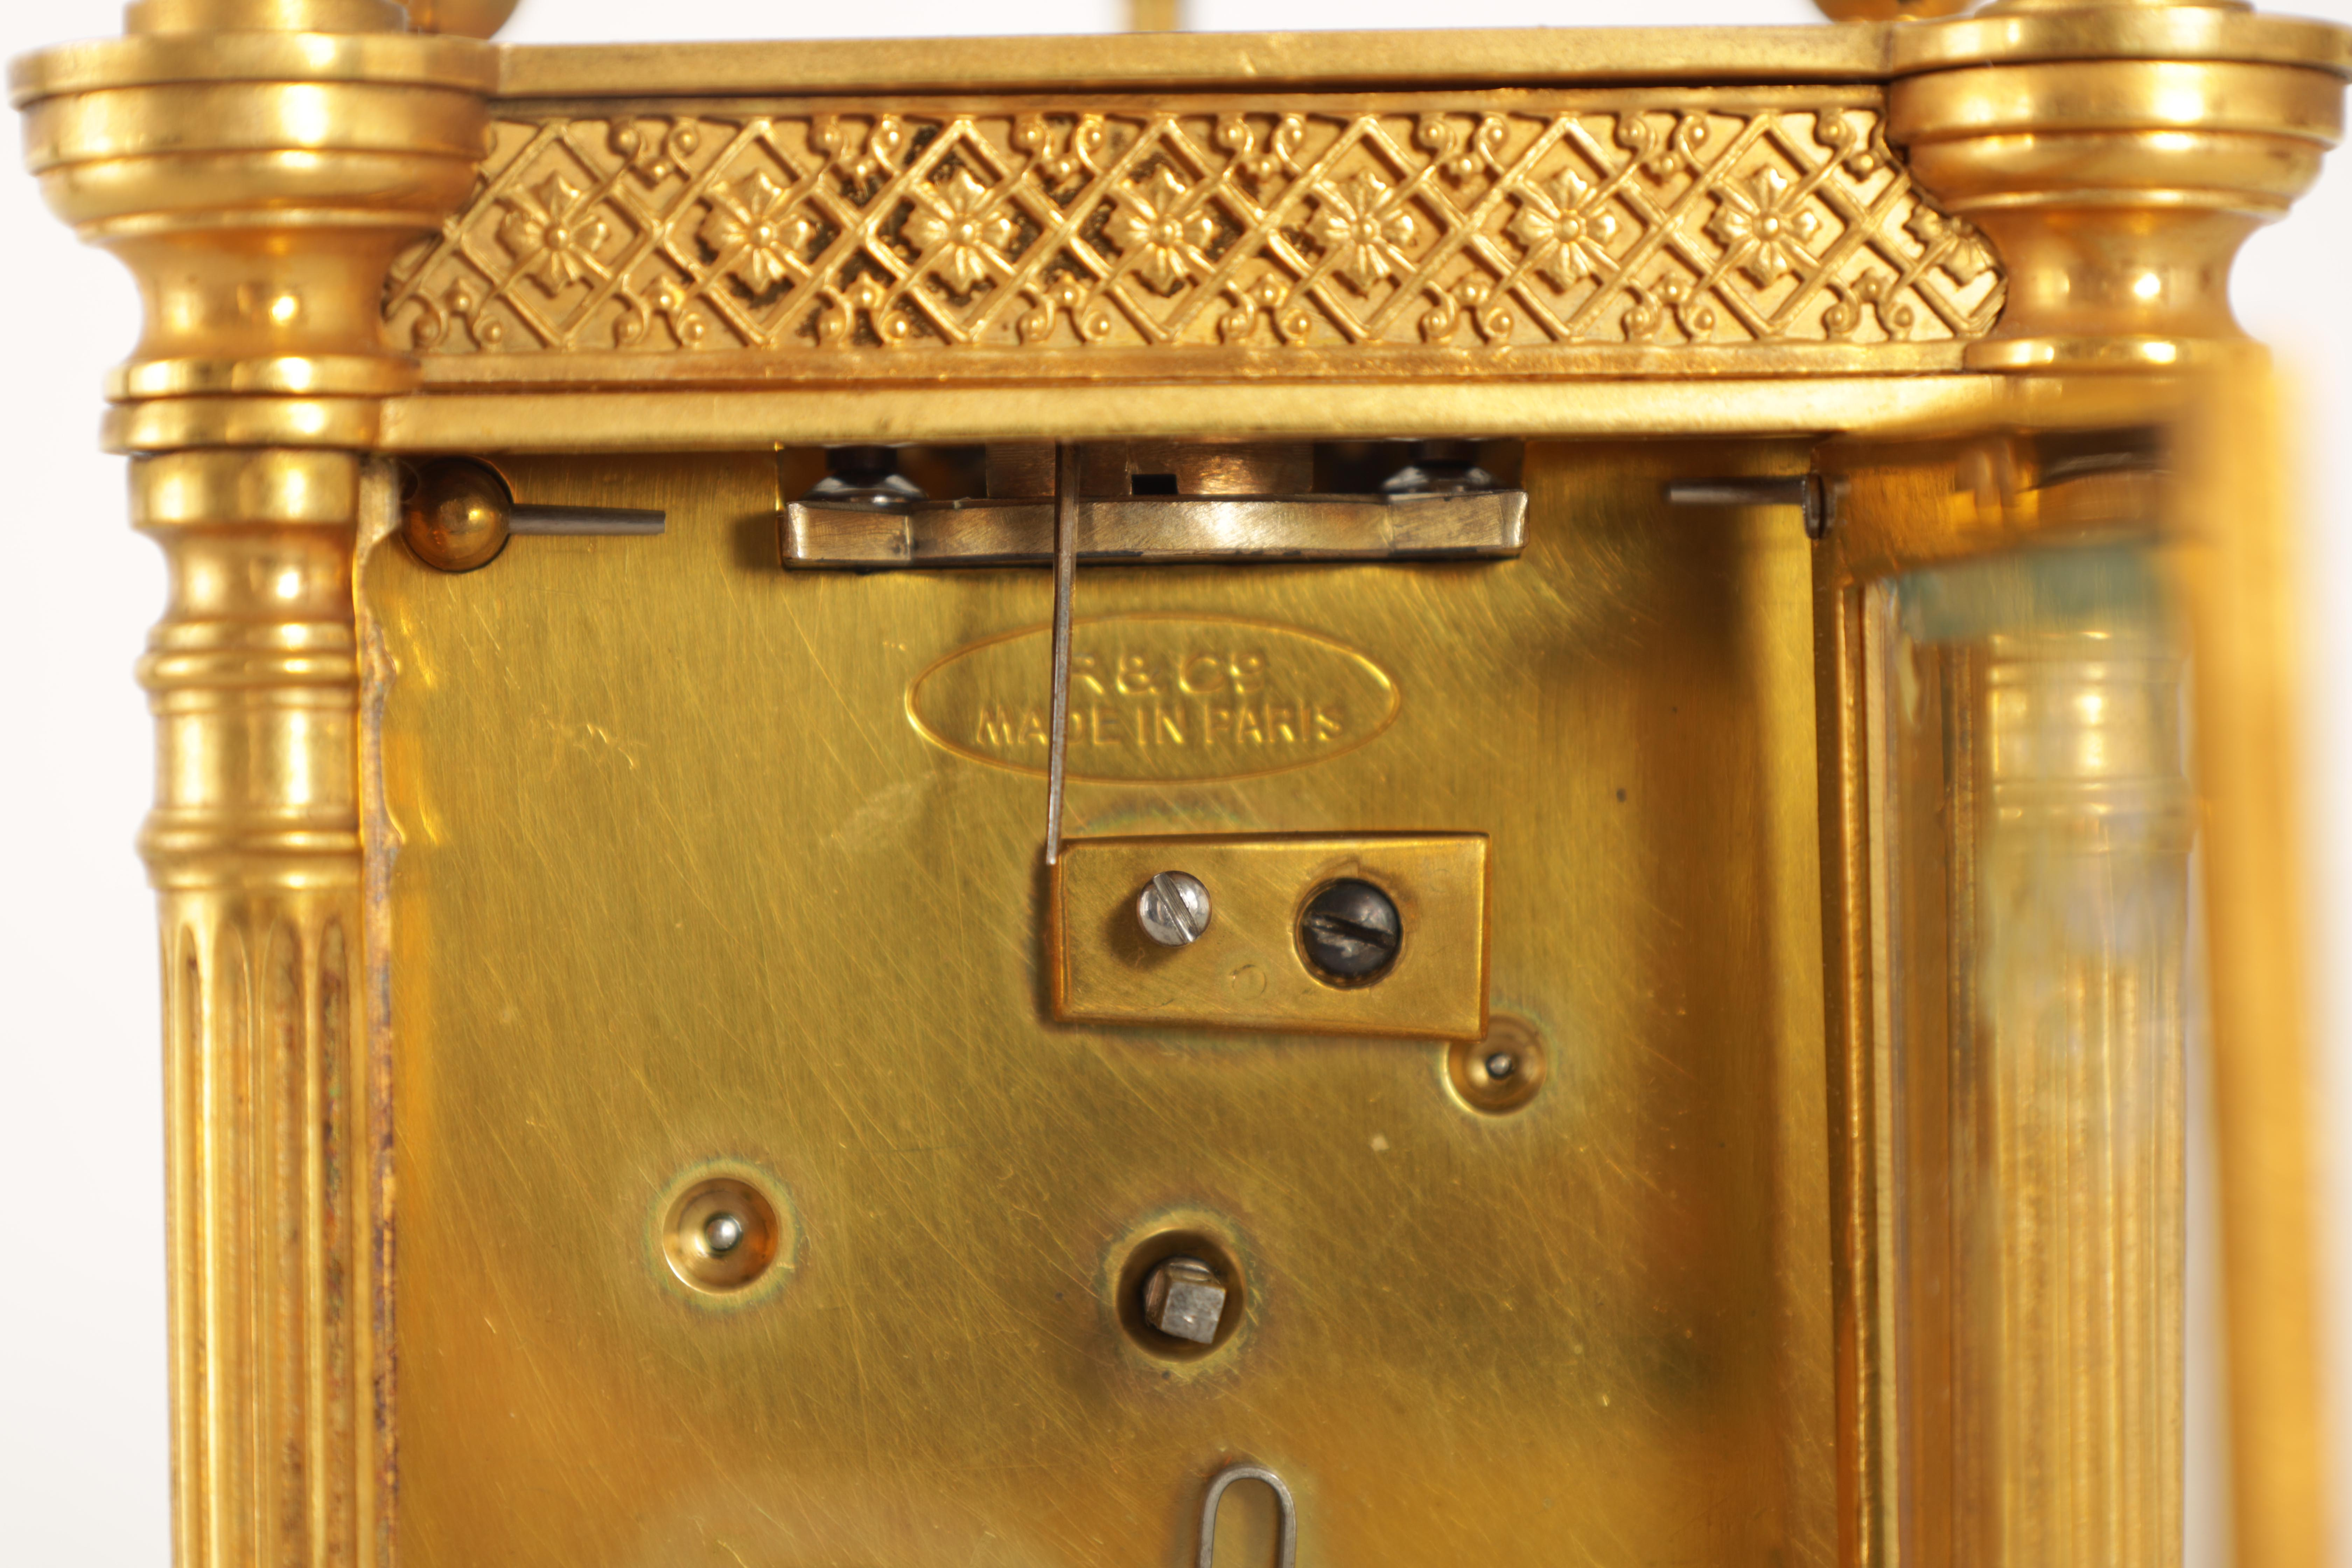 A LATE 19TH CENTURY FRENCH BRASS CARRIAGE CLOCK WITH CALENDAR the gilt case with pierced frieze - Image 6 of 6